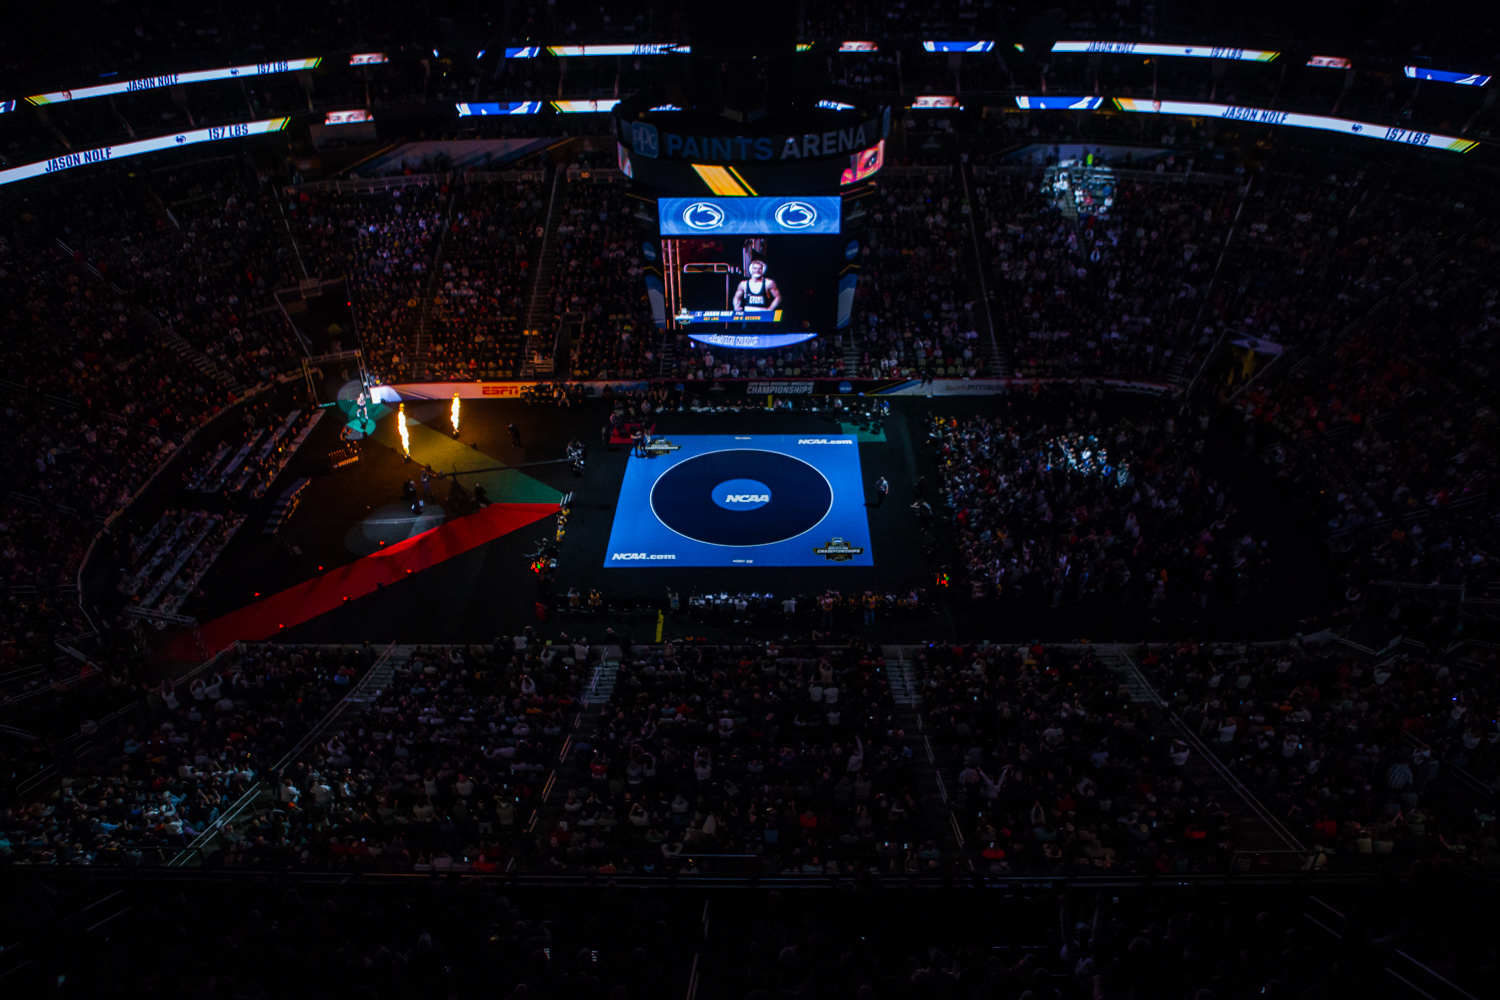 Penn+State%27s+157-pound+Jason+Nolf+runs+onto+the+mat+during+the+final+session+of+the+2019+NCAA+D1+Wrestling+Championships+at+PPG+Paints+Arena+in+Pittsburgh%2C+PA+on+Saturday%2C+March+23%2C+2019.